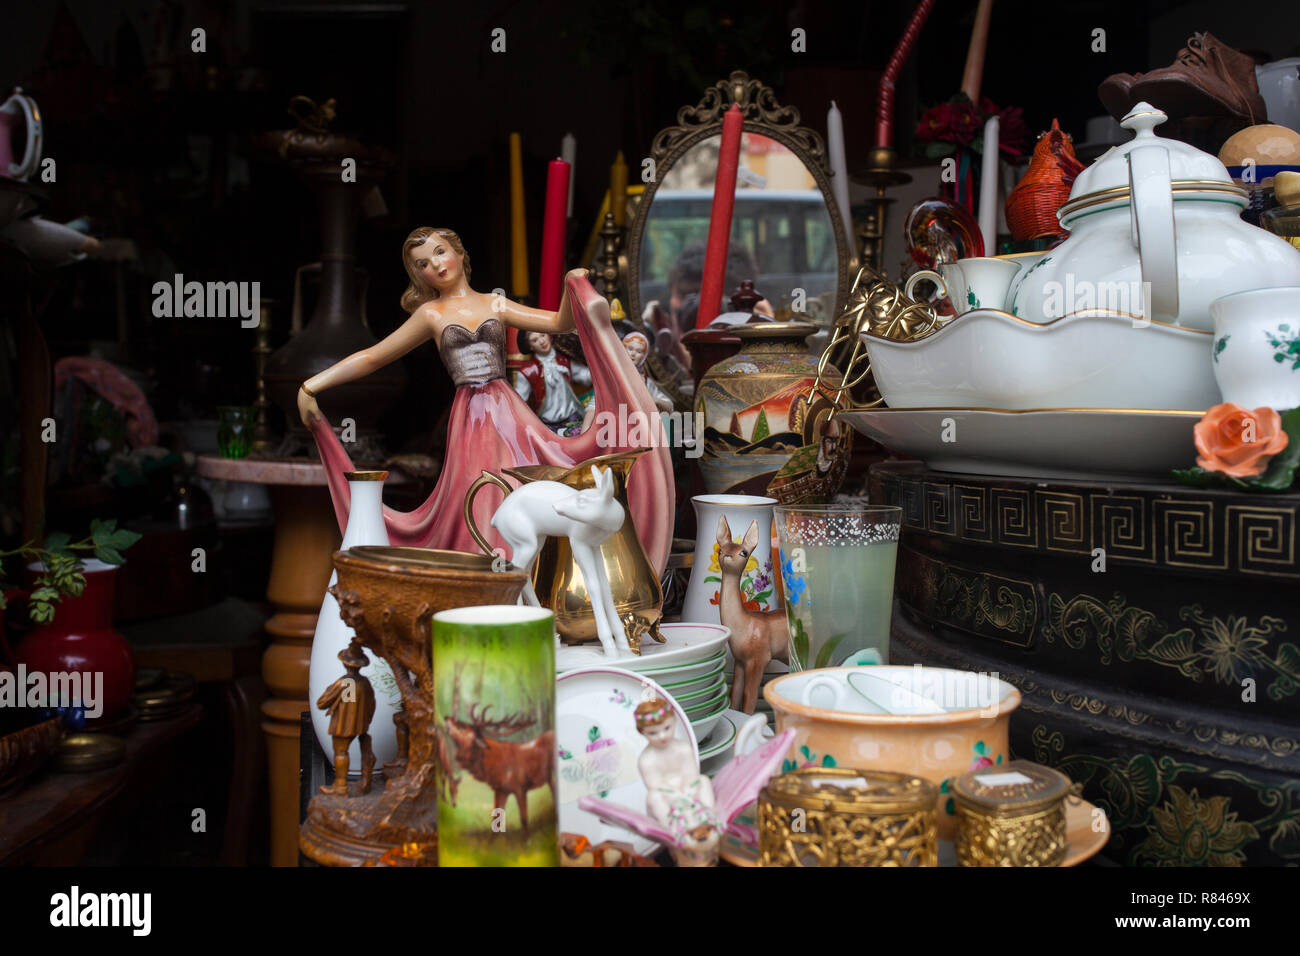 VIENNA, AUSTRIA - MAY, 22: Old vintage objects and furniture